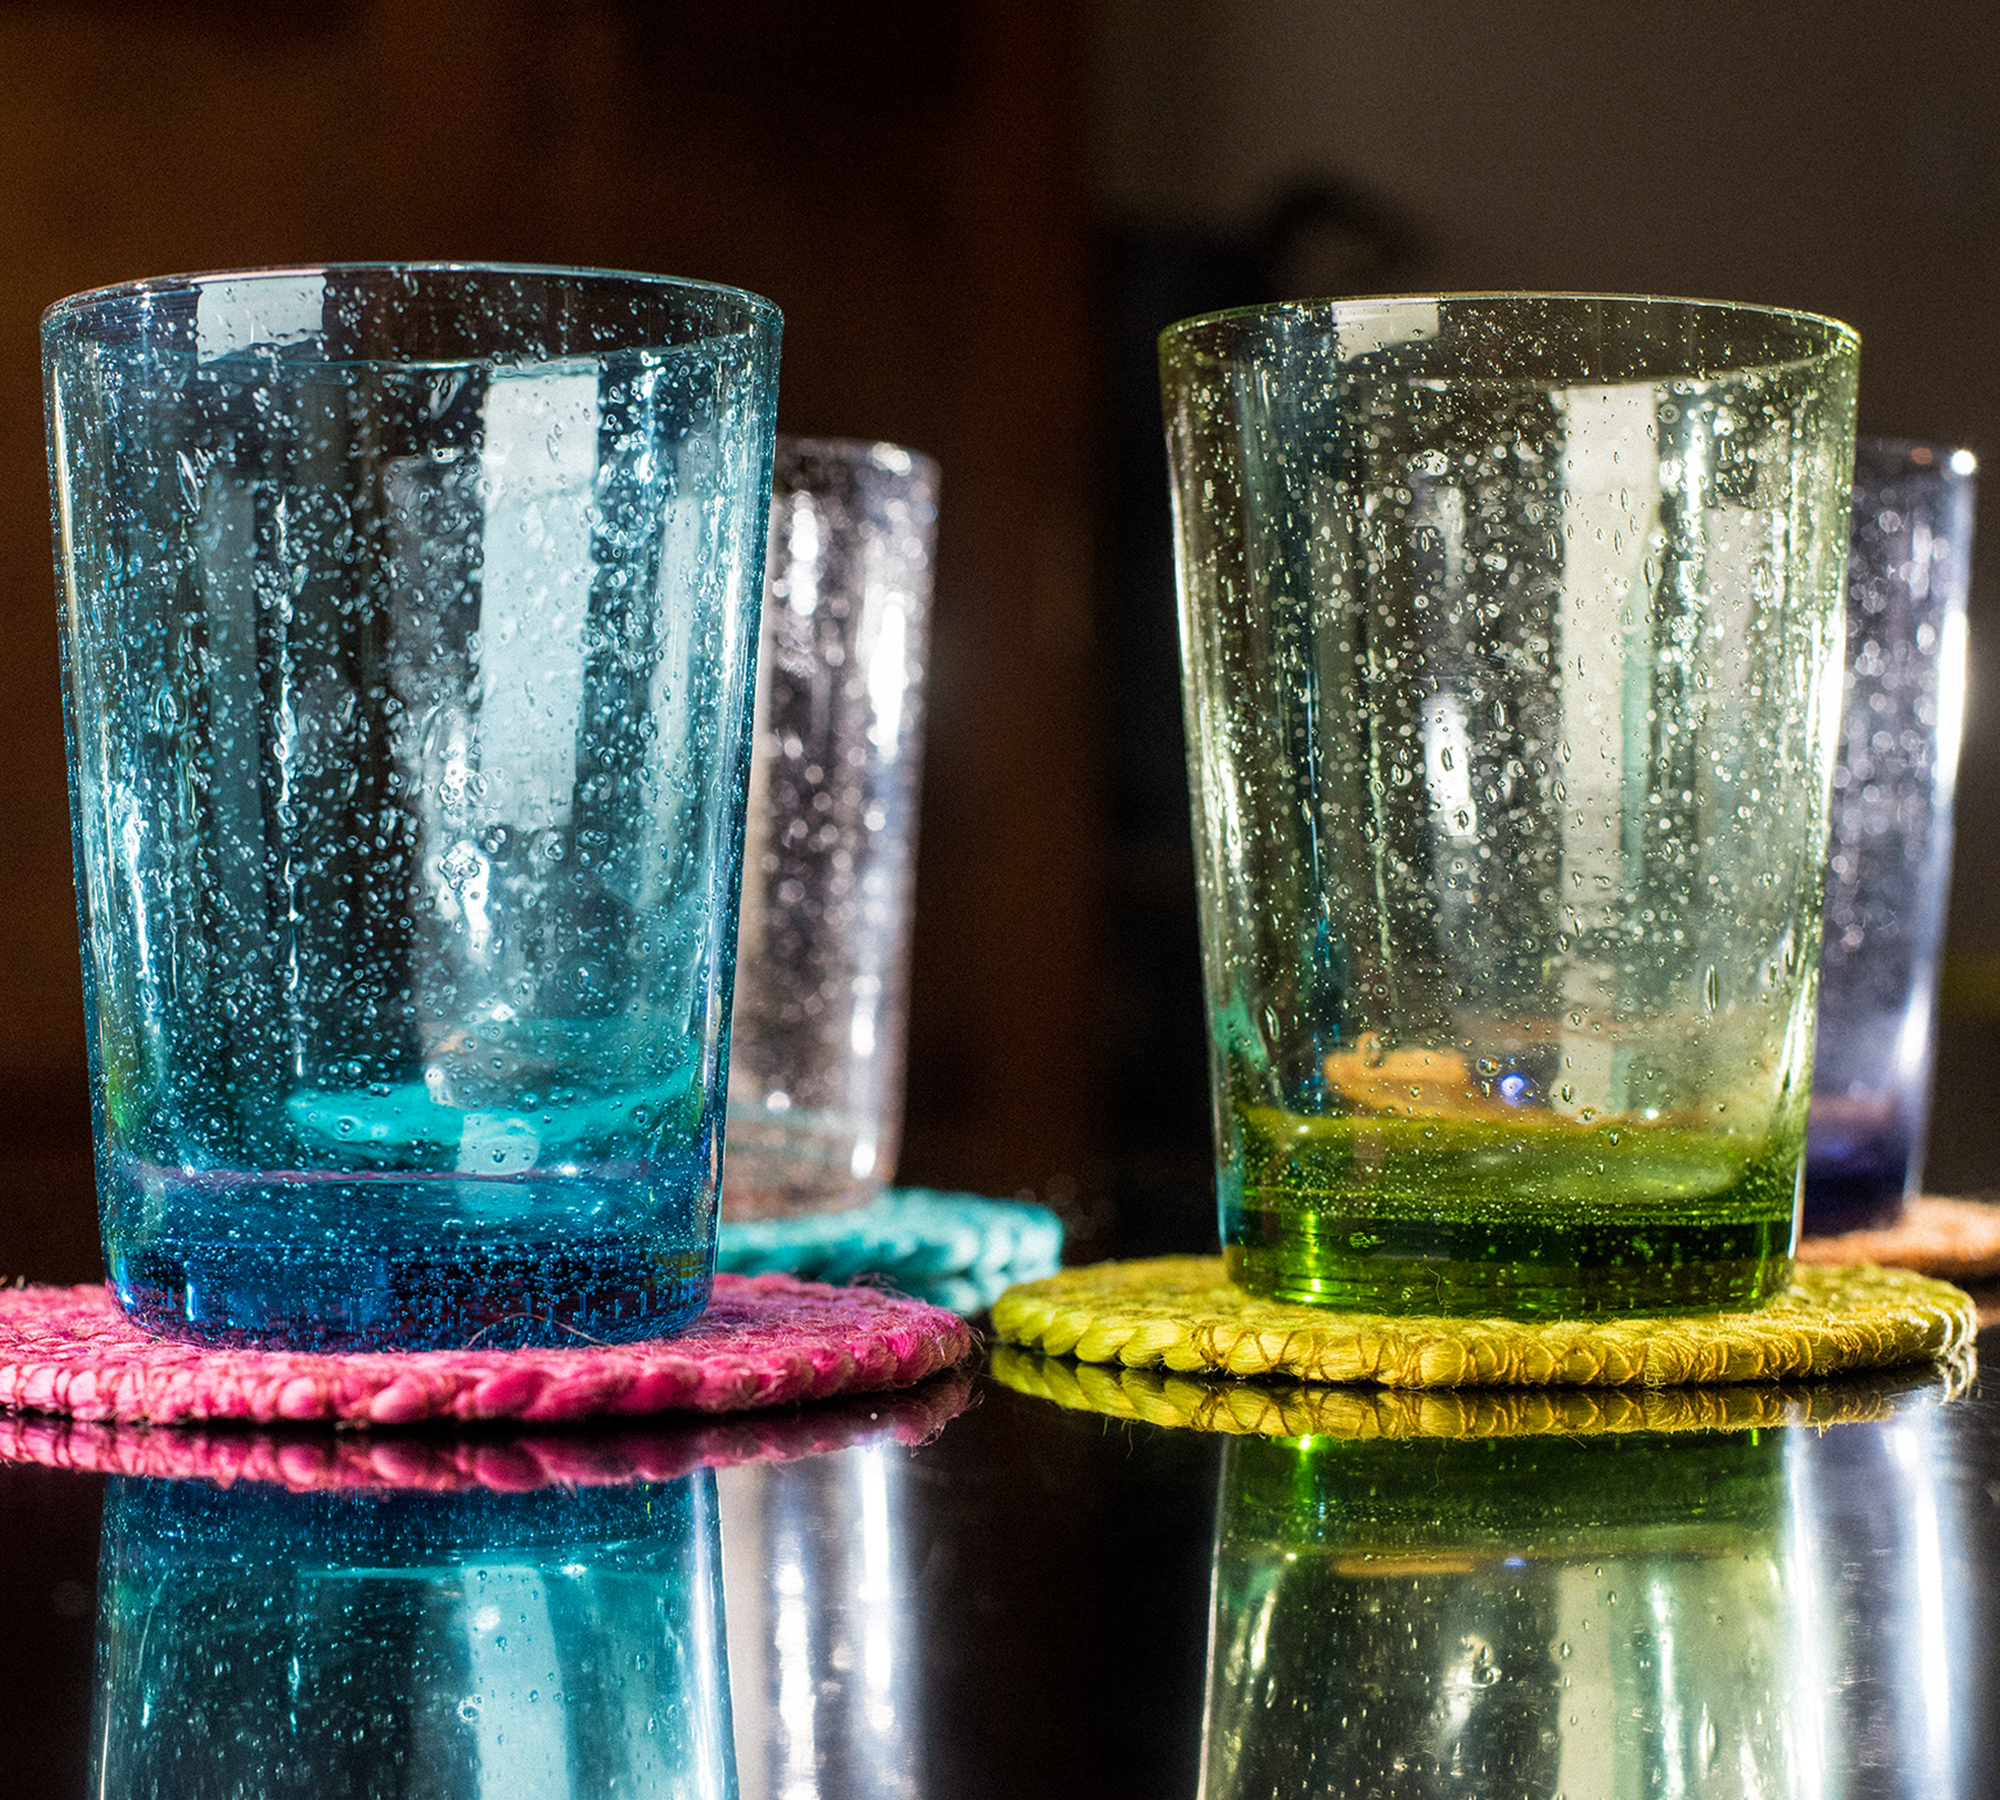 Recycled Bubble Glass Collection Pressfix Pressfix Co Formerly Gift Guide Portal